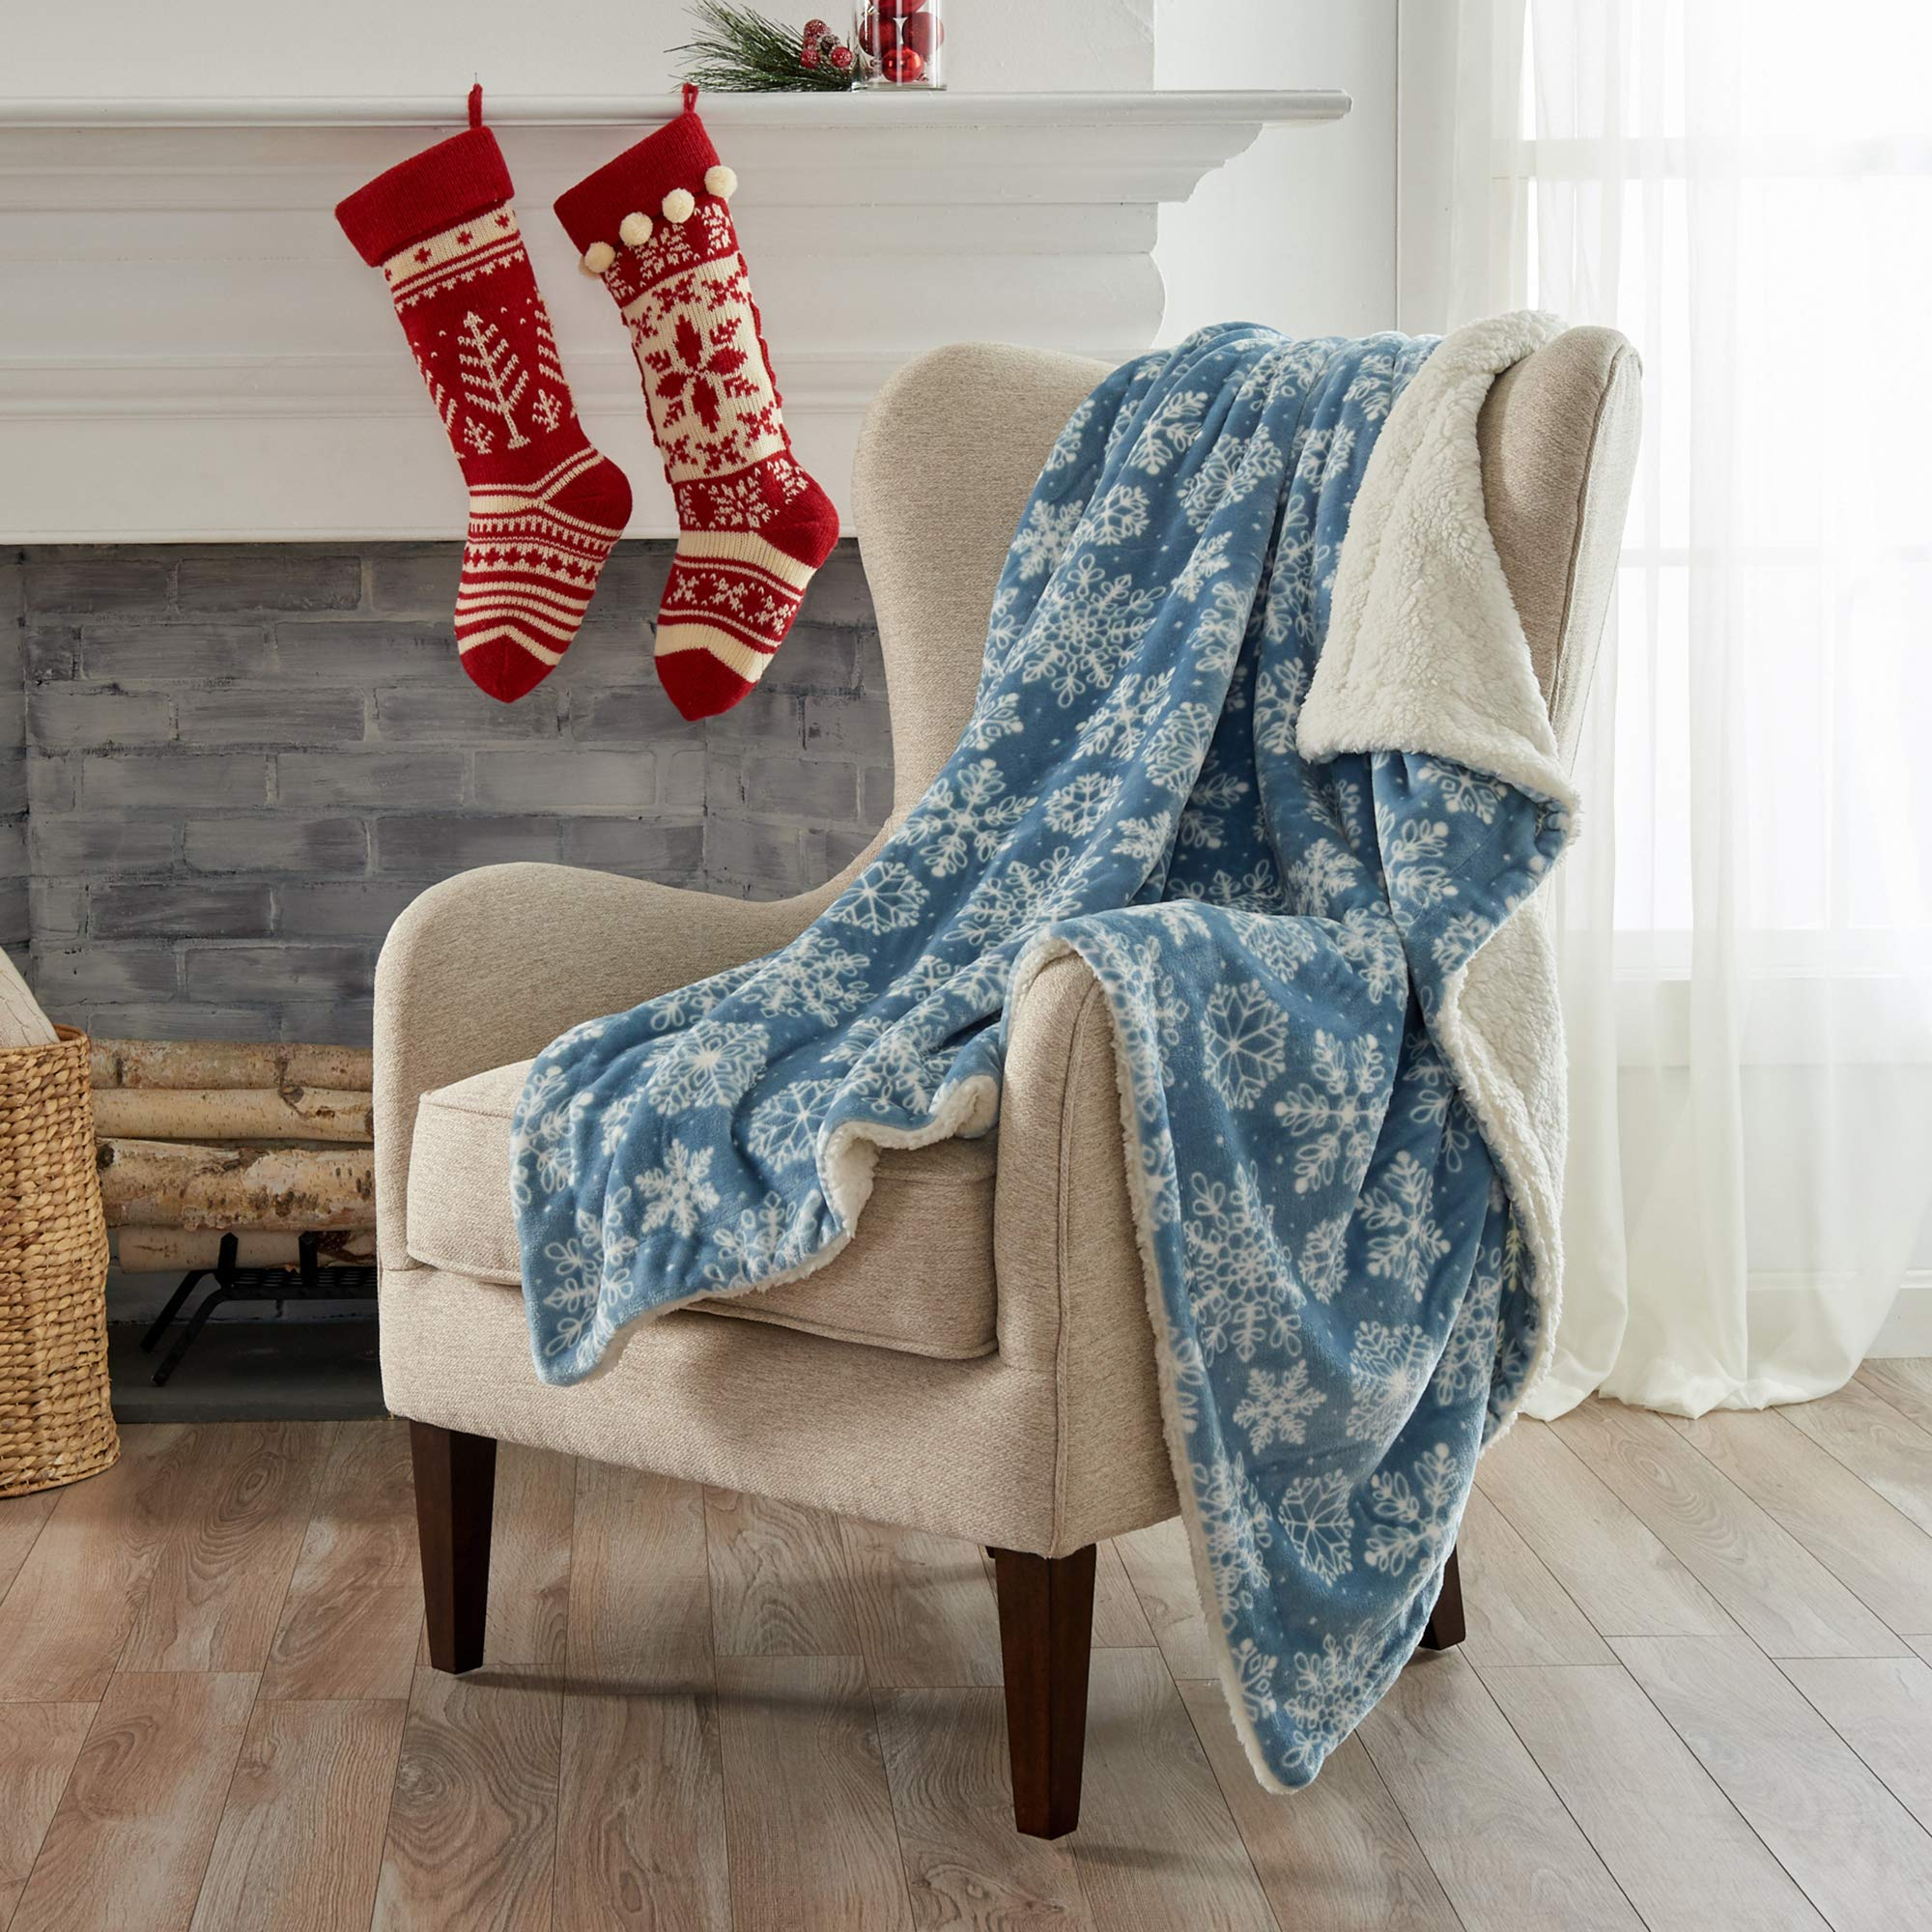 Home Fashion Designs Premium Reversible Two In One Sherpa And Fleece Velvet Plush Blanket Fuzzy Cozy All Season Berber Fleece Throw Blanket Snowflakes Buy Online In Bahrain Missing Category Value Products In Bahrain